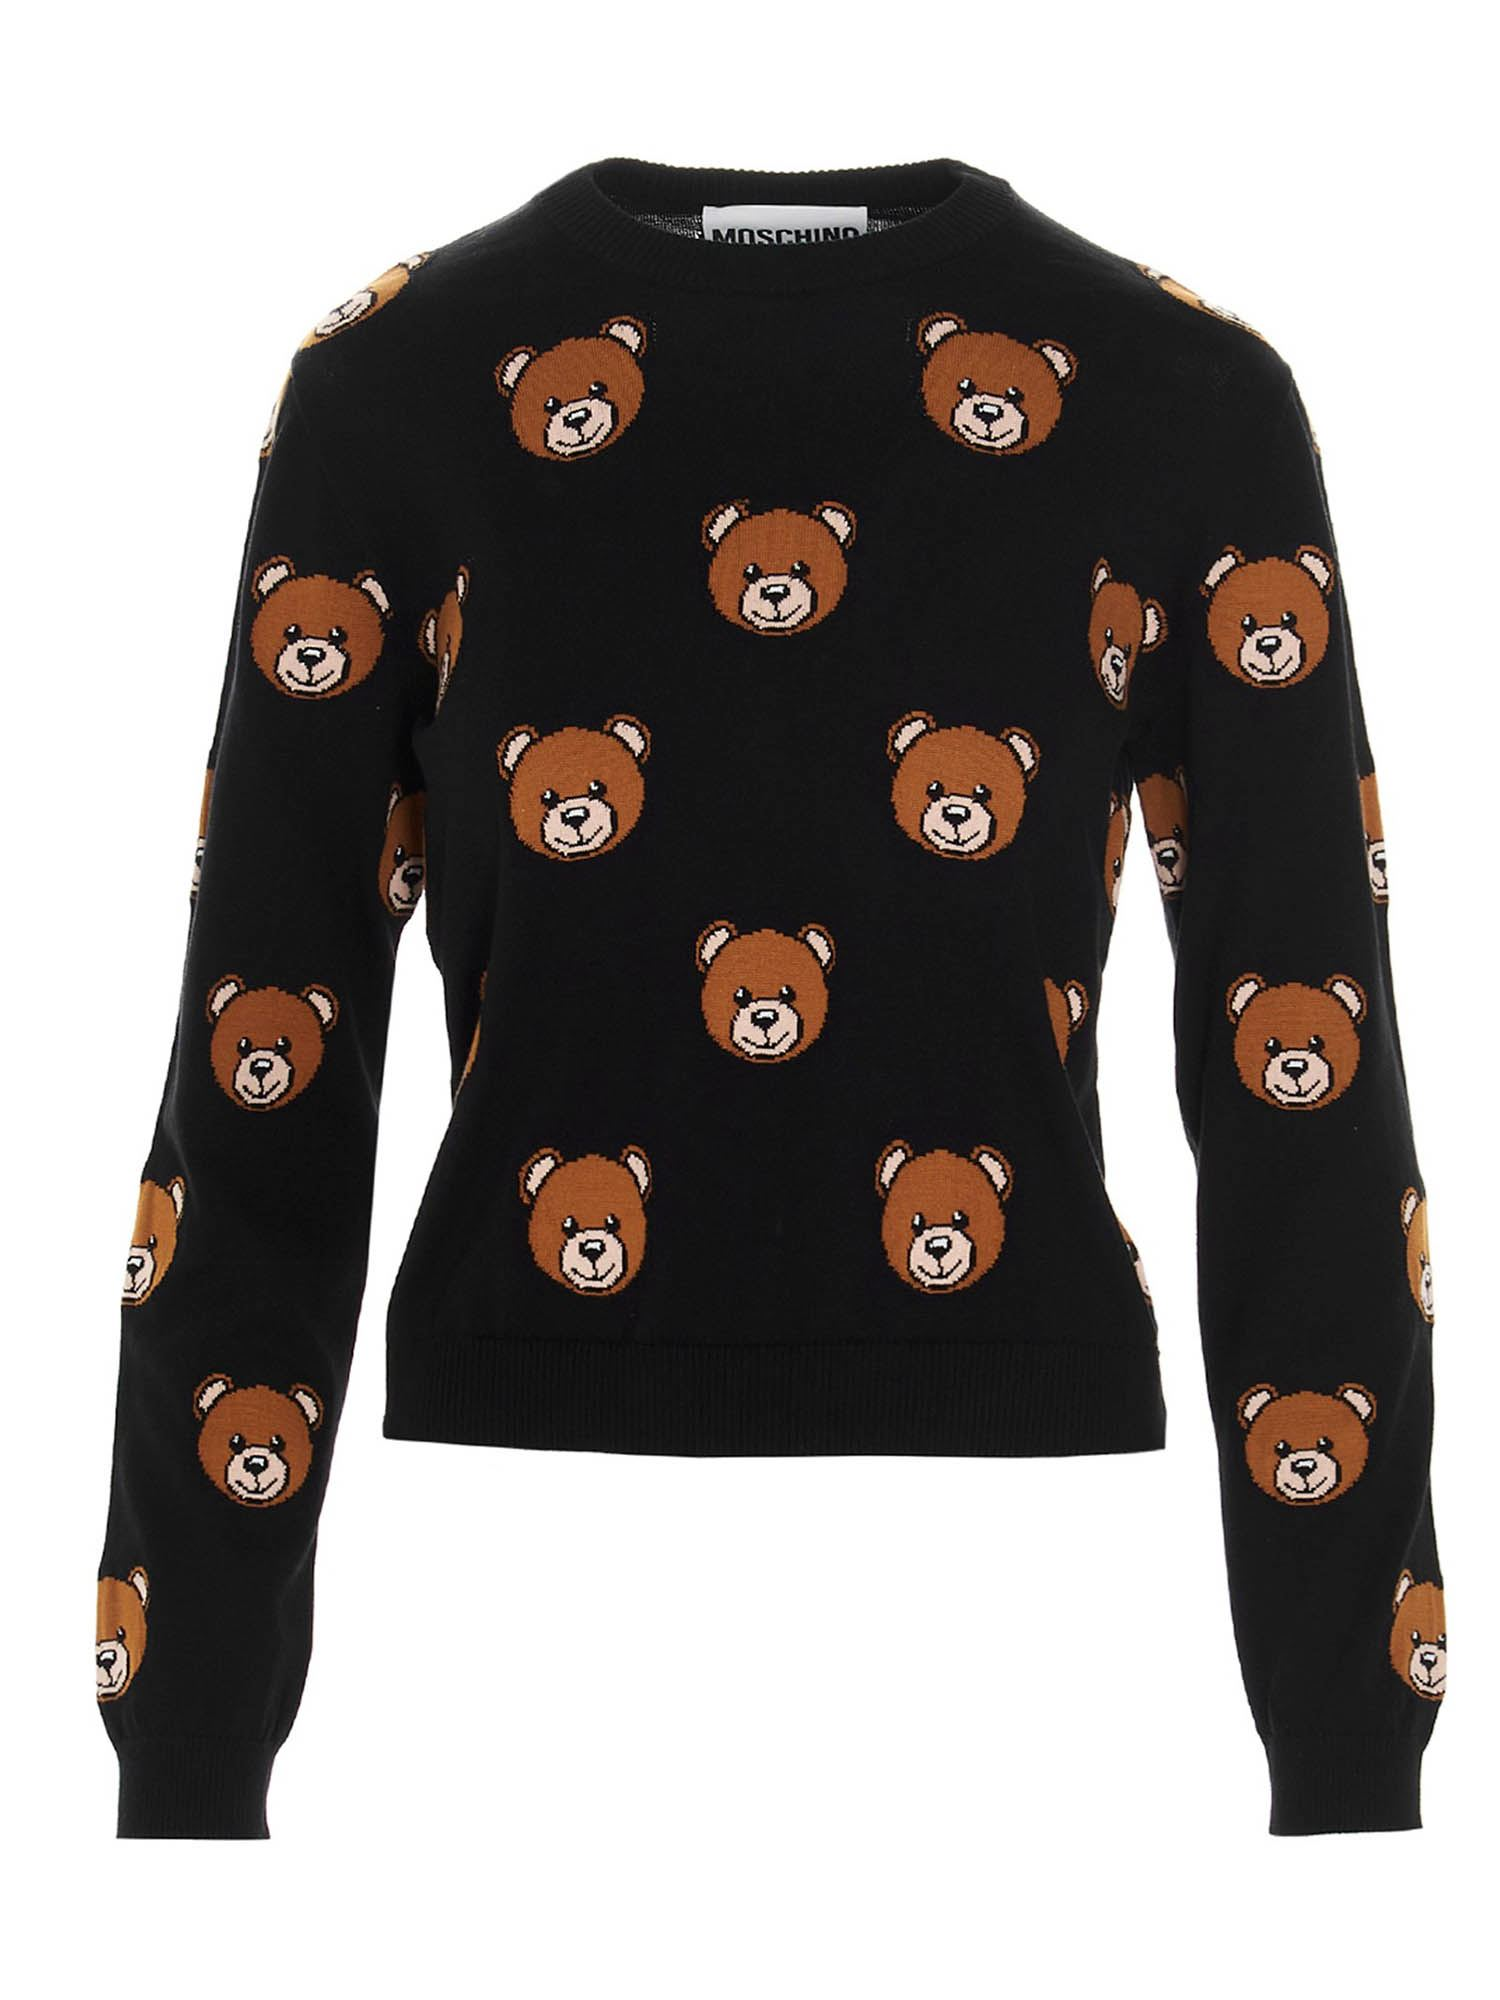 Moschino Cottons ALL OVER BEAR JUMPER